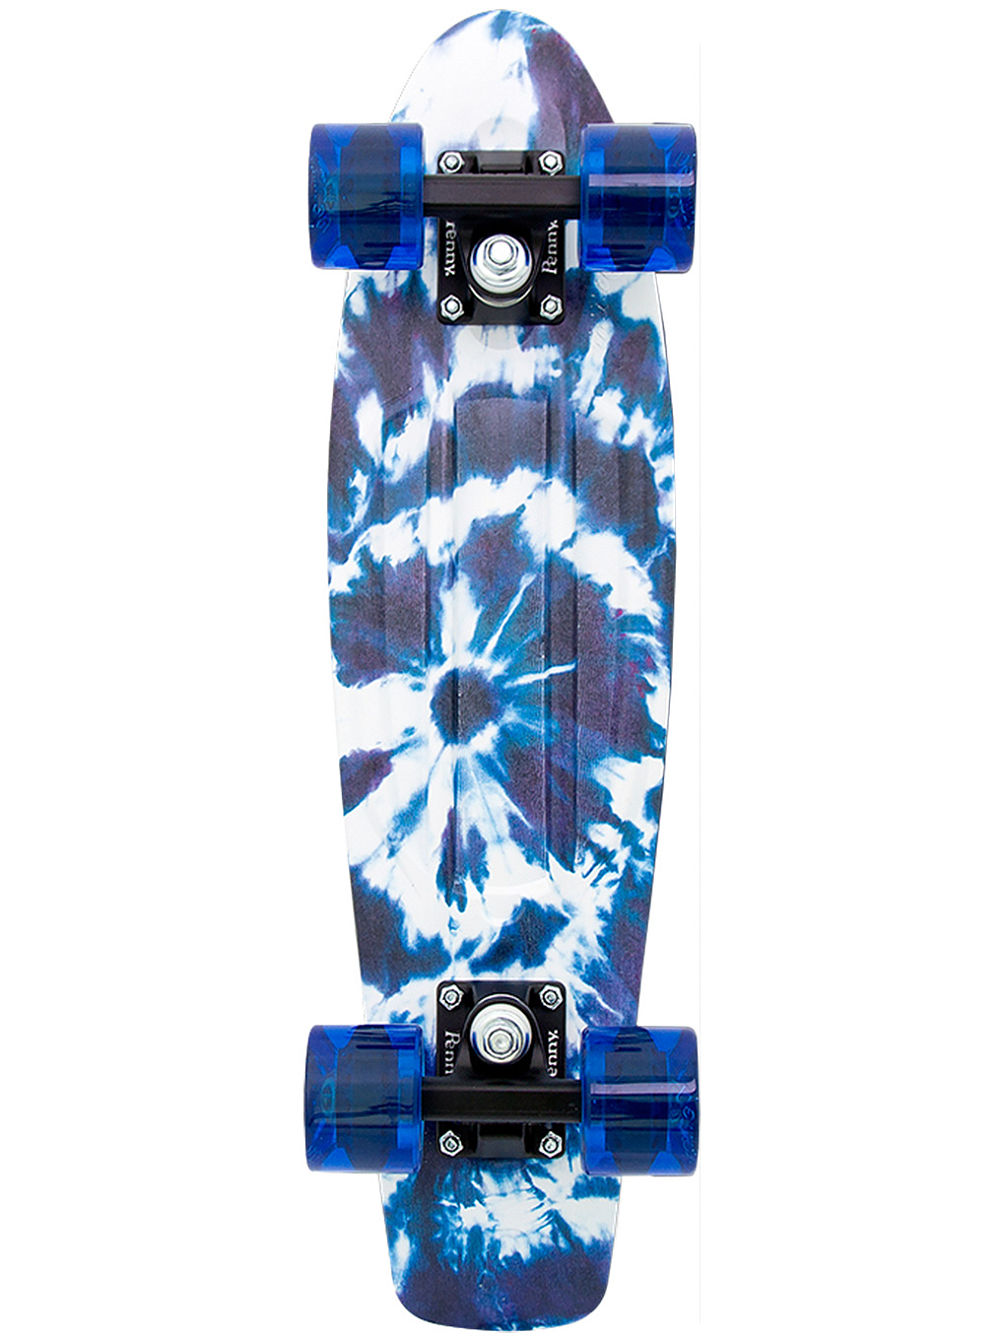 penny skateboards classic 22 indigo tie dye complete online kaufen bei blue. Black Bedroom Furniture Sets. Home Design Ideas